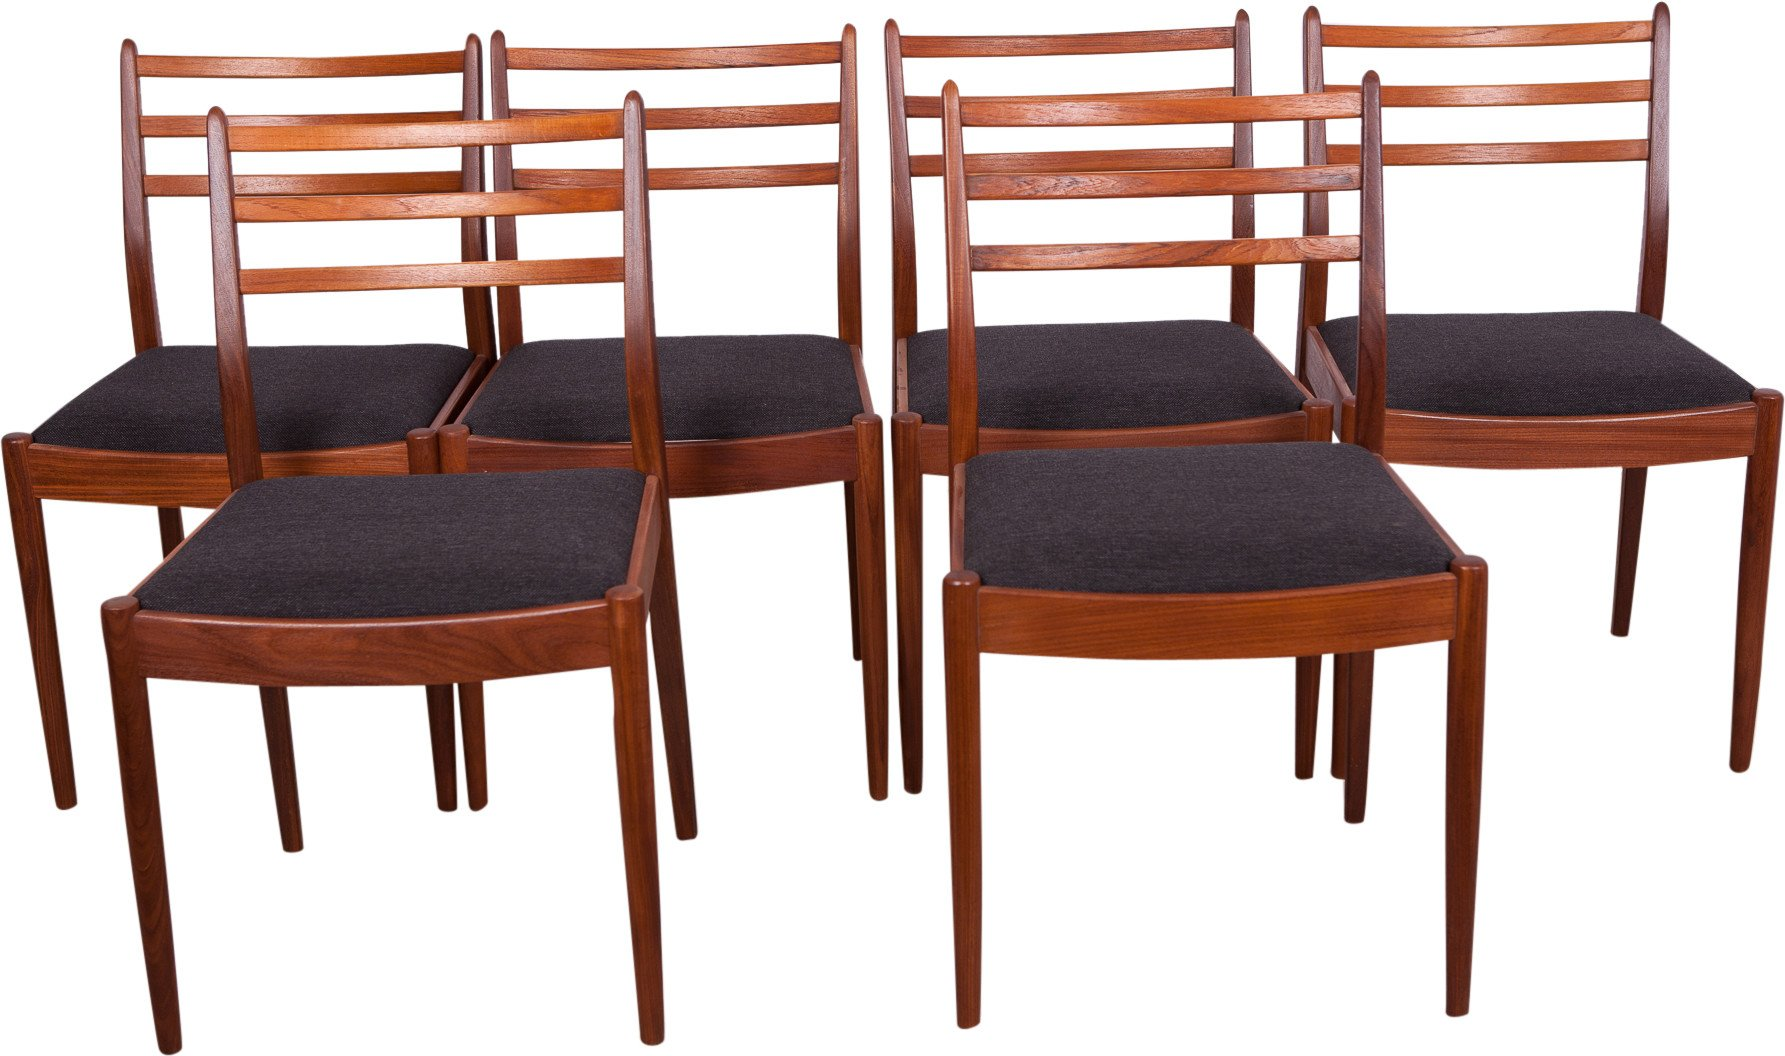 Set of Six Chairs by V. Wilkins, G- Plan, Great Britain, 1960s